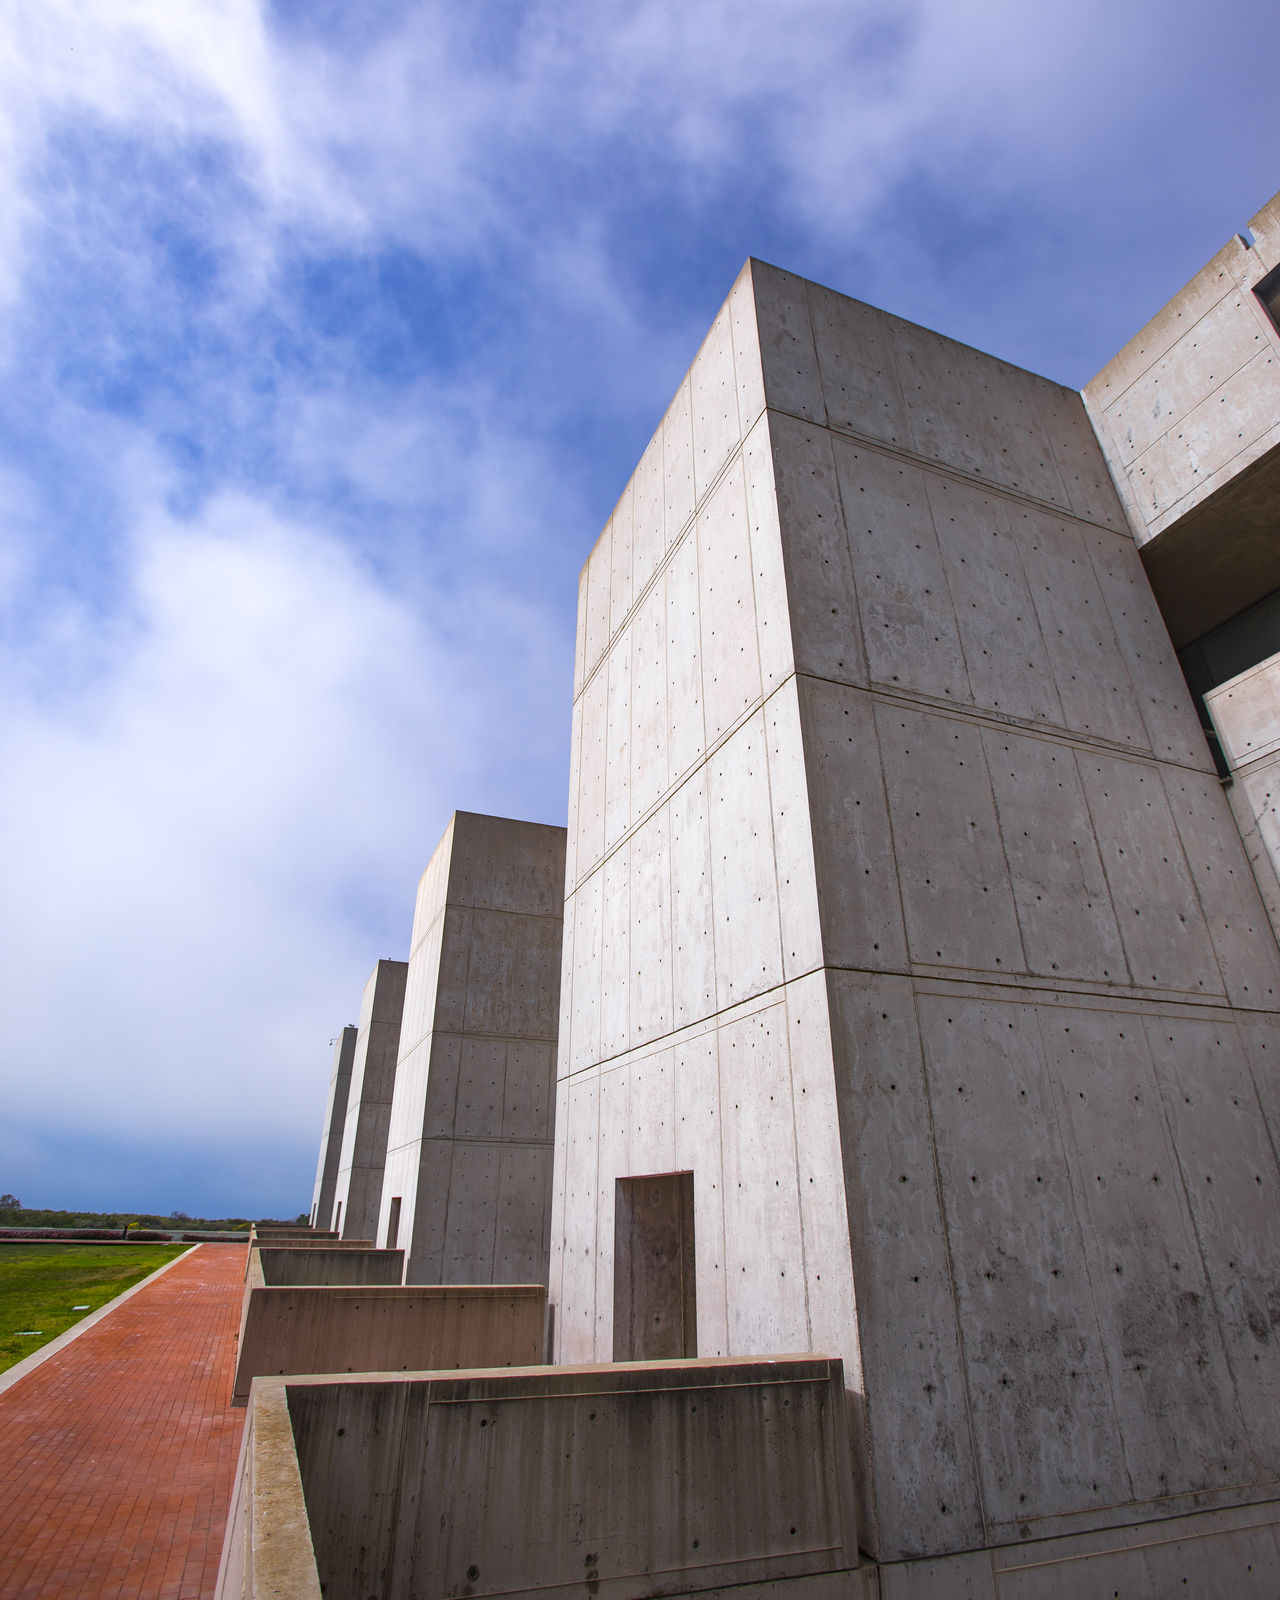 Architecture Building Exterior Built Structure Cali California Cloud - Sky Day Education History Low Angle View No People Outdoors Salk Institute  Sky Southern California Travel Destinations